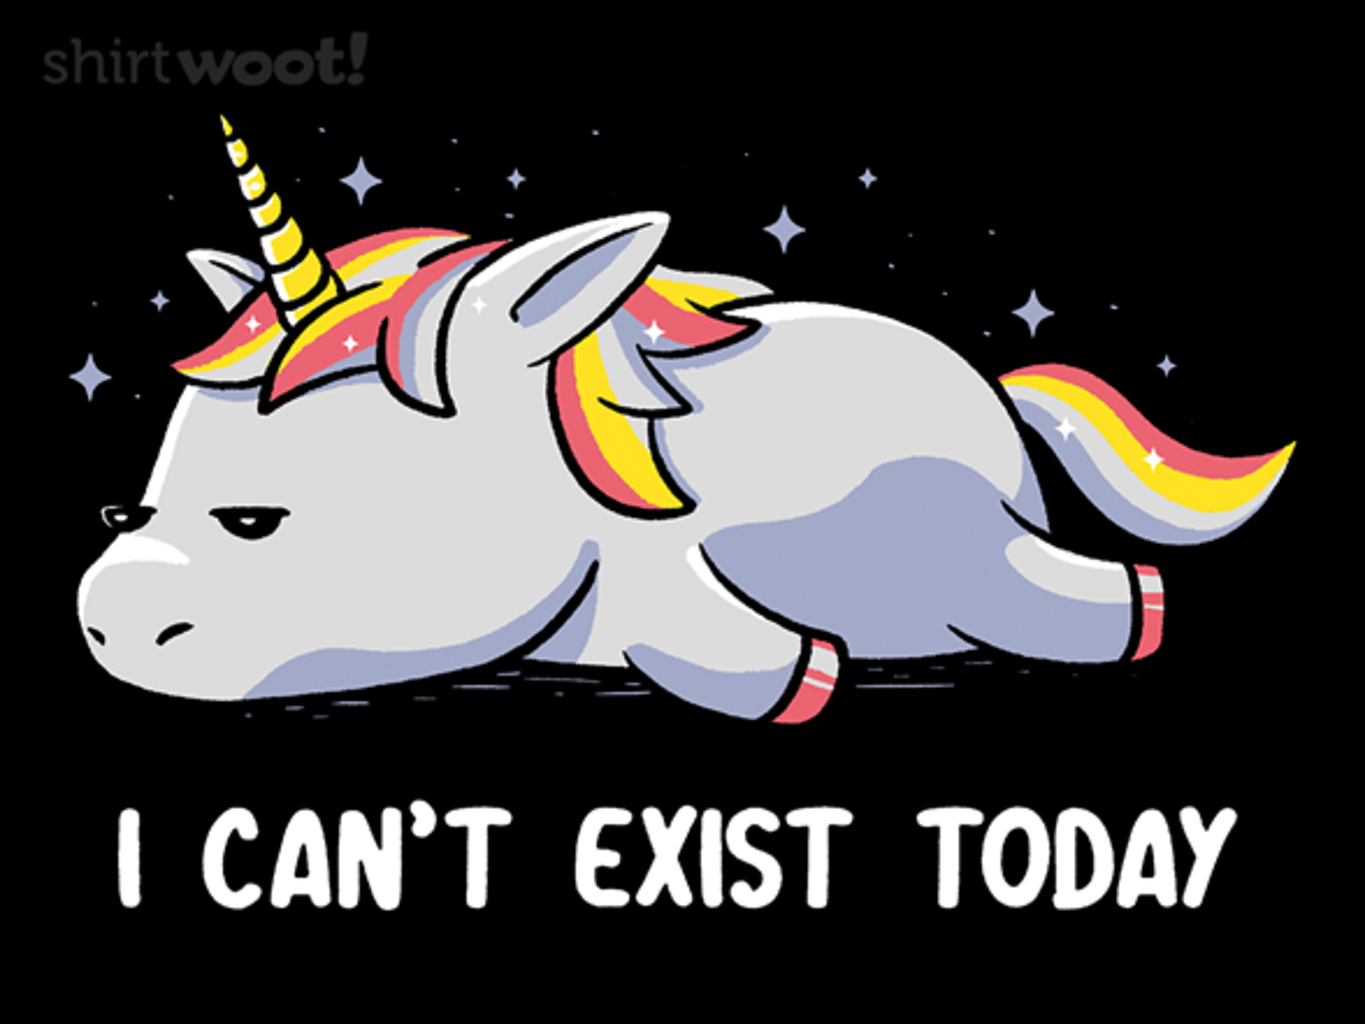 Woot!: I Can't Exist Today